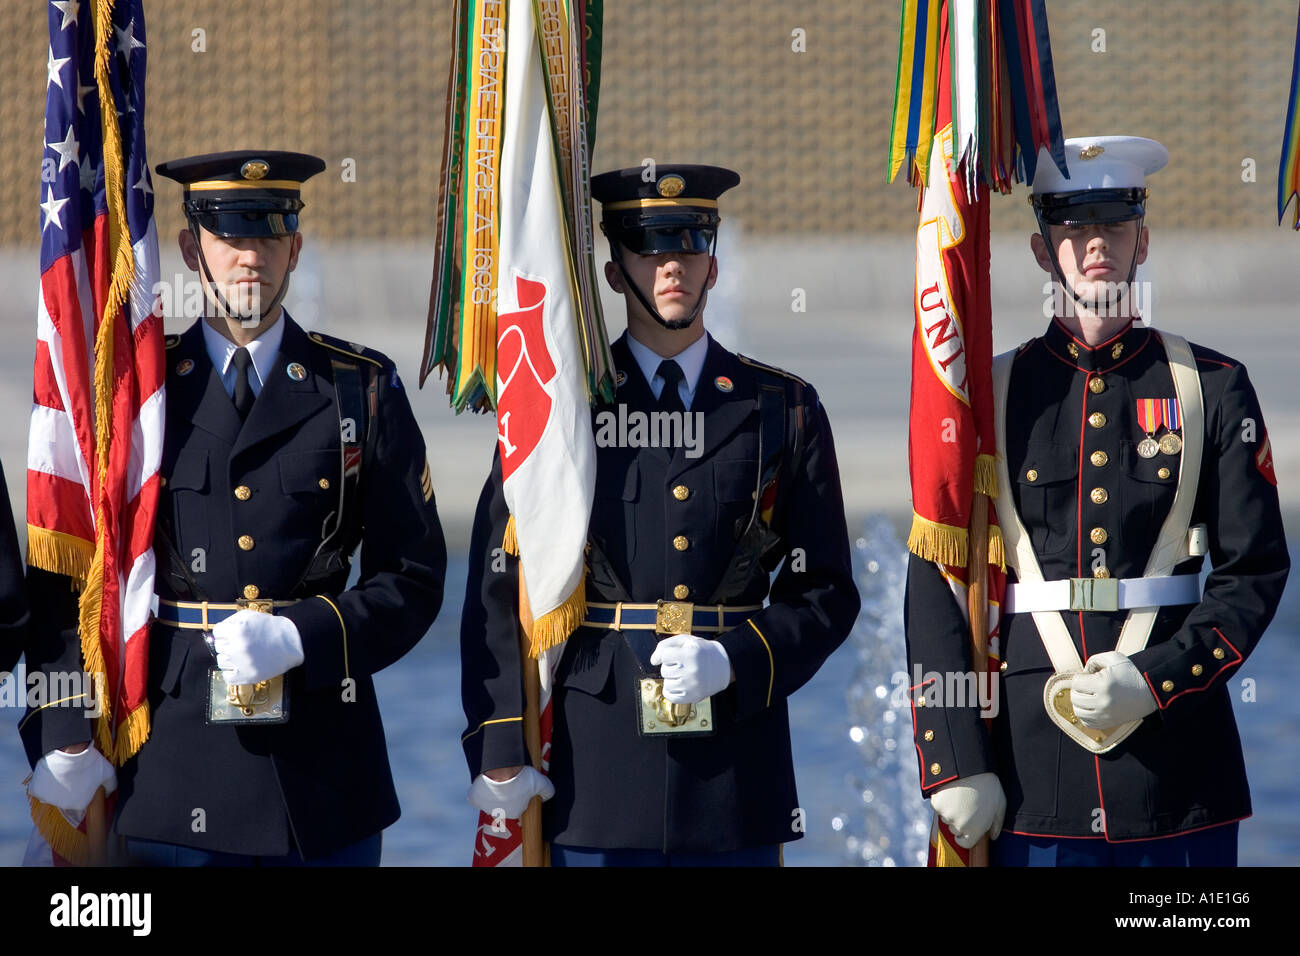 American servicemen at The National World War II Memorial Washington DC United States of America - Stock Image